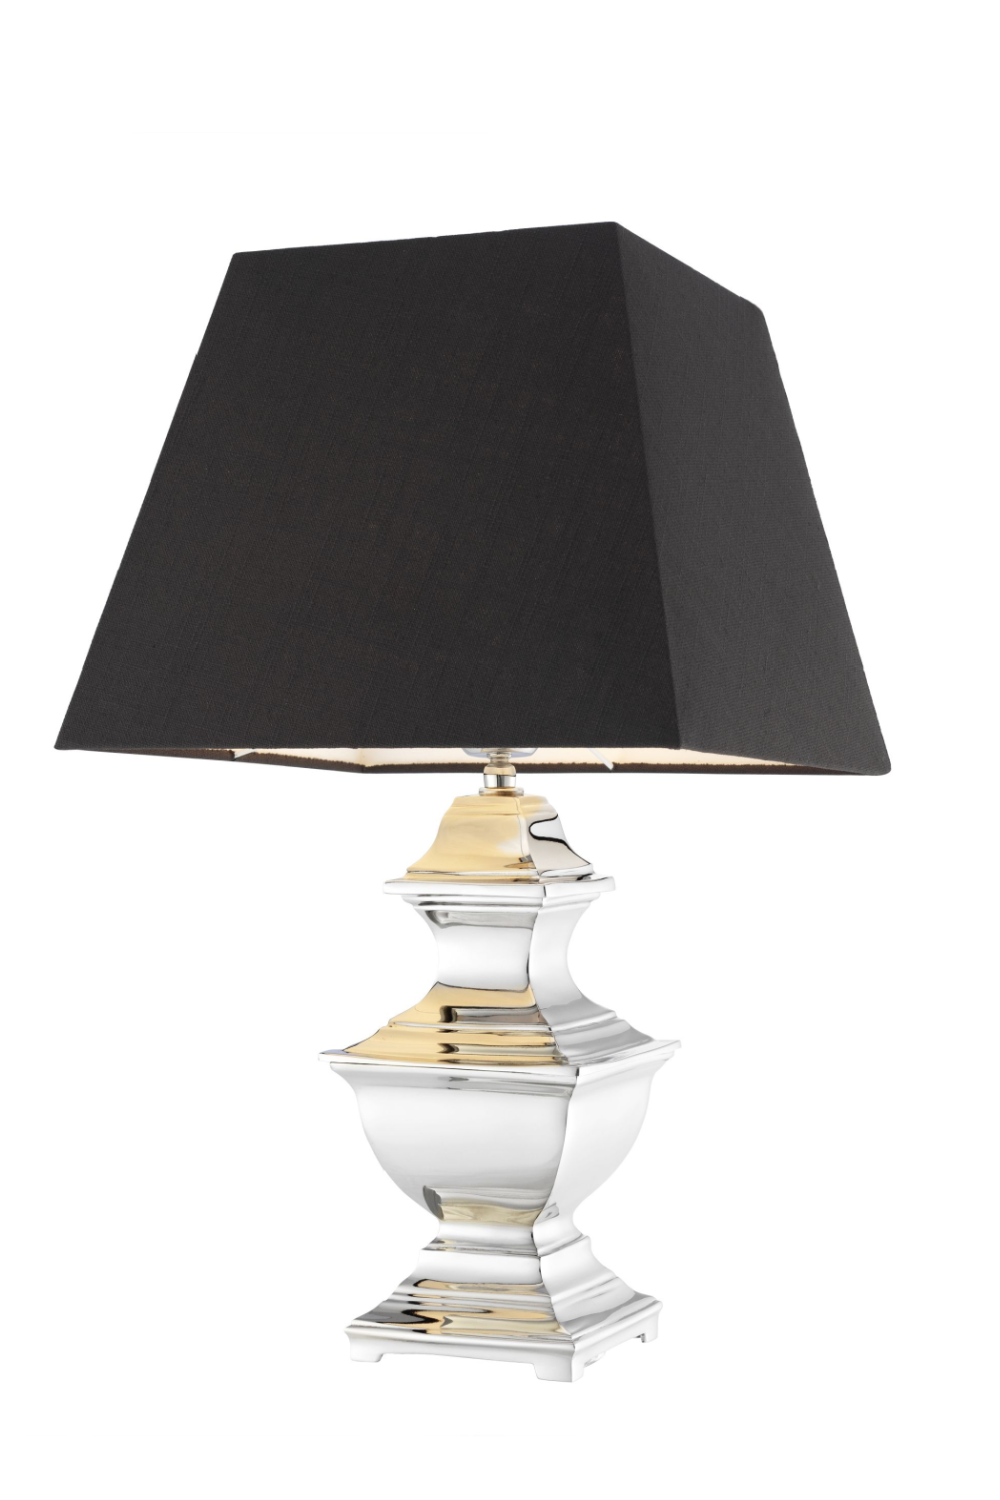 Black Shaded Table Lamp | Eichholtz Maryland | #1 Eichholtz Retailer